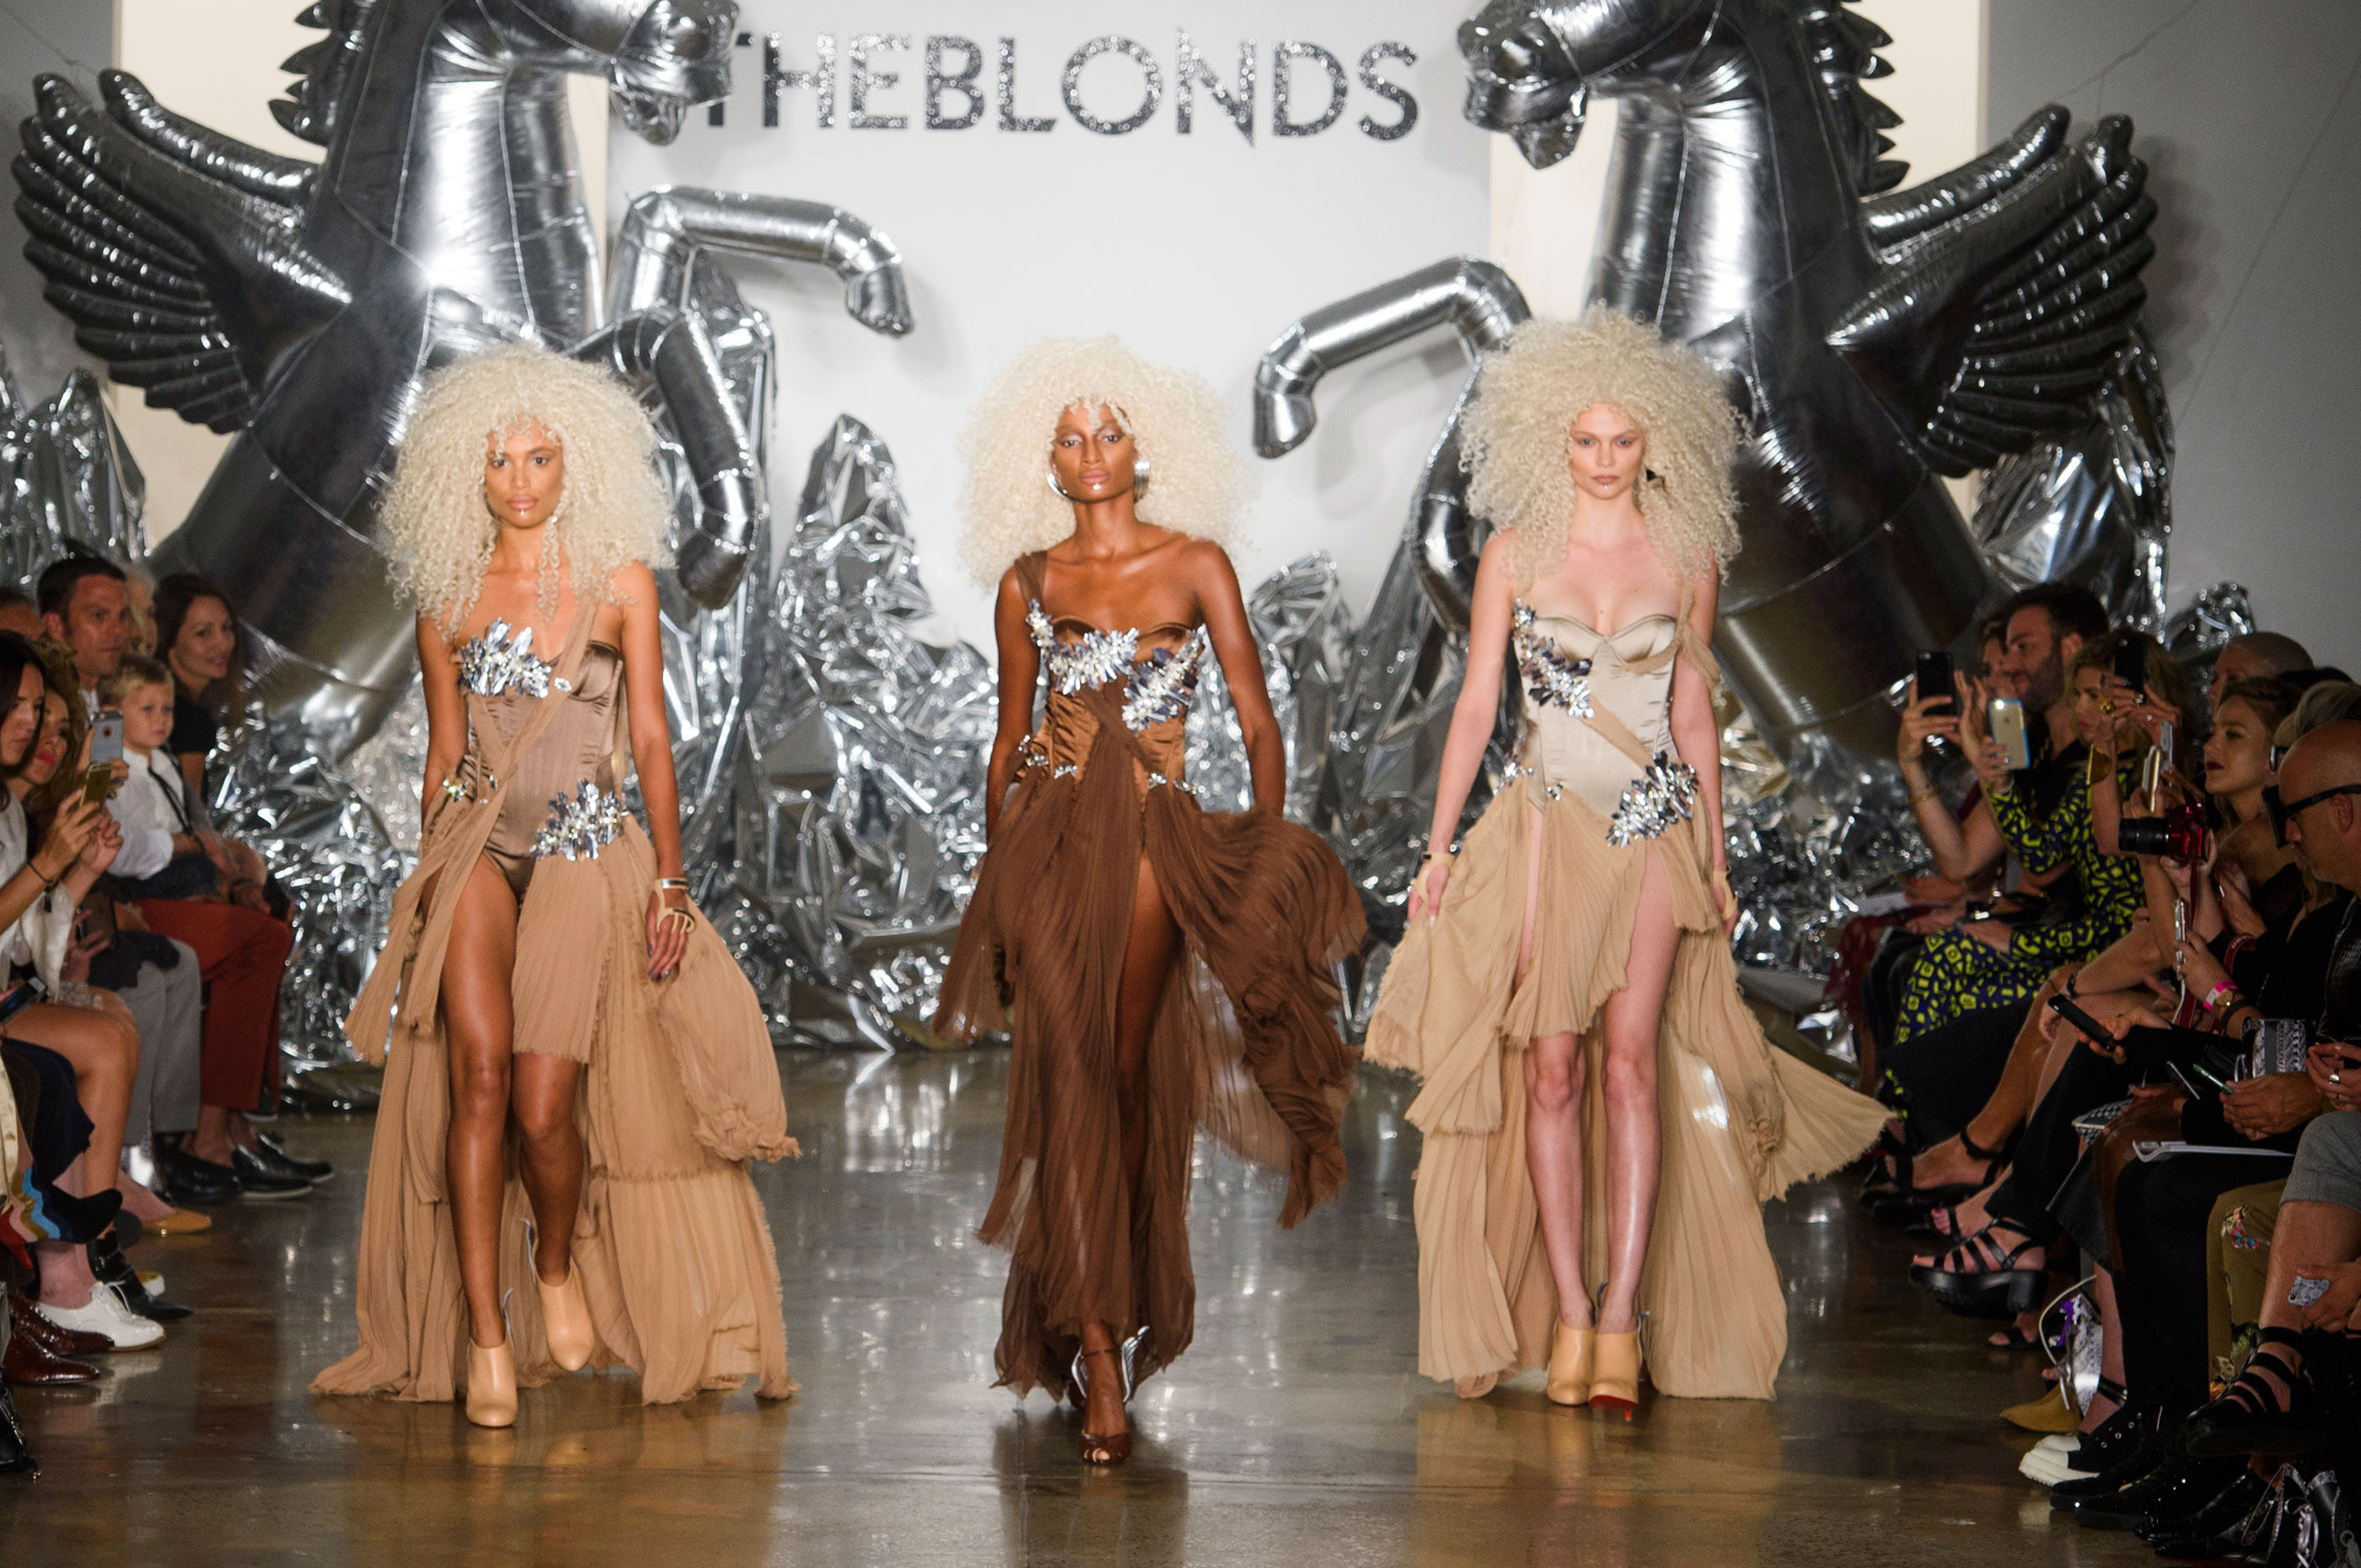 The blonds ss 2017